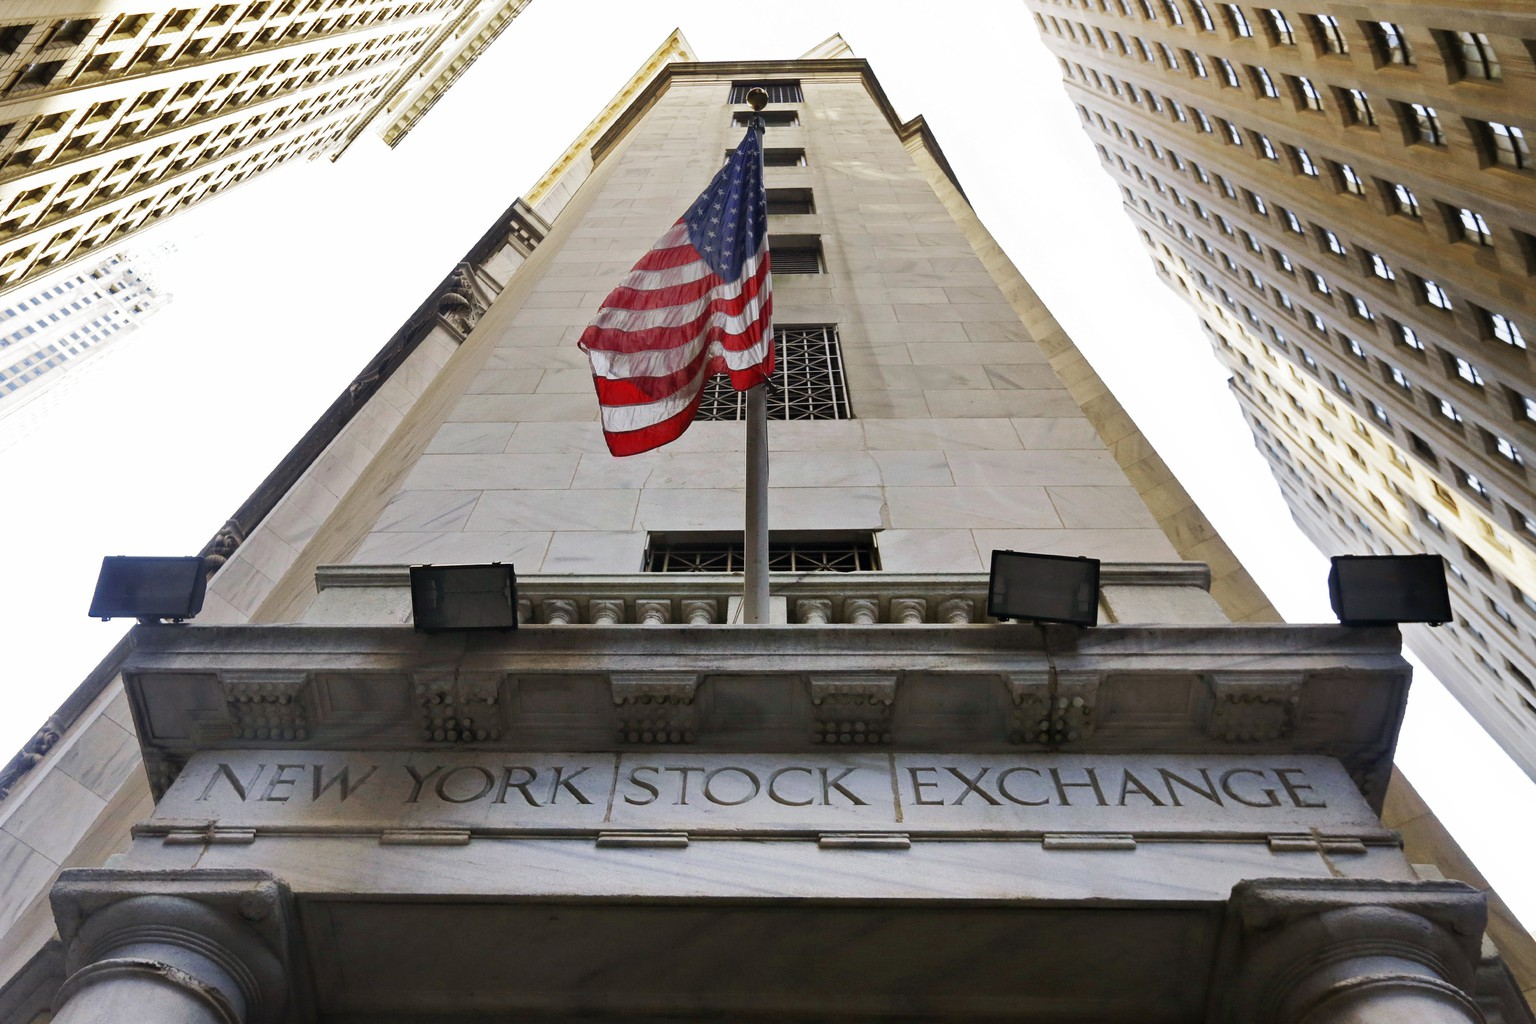 In this Friday, Nov. 13, 2015, photo, the American flag flies above the Wall Street entrance to the New York Stock Exchange, in New York. U.S. stocks wobbled between small gains and losses Tuesday, Nov. 19, 2019, as investors paused following another record-setting day.  The major indexes have been steadily rising and setting records for weeks as a mix of solid economic data and corporate earnings inject confidence into the market. Worries about a potential recession have faded and investors are now closely watching for any developments in trade talks between the U.S. and China. (AP Photo/Richard Drew, File)